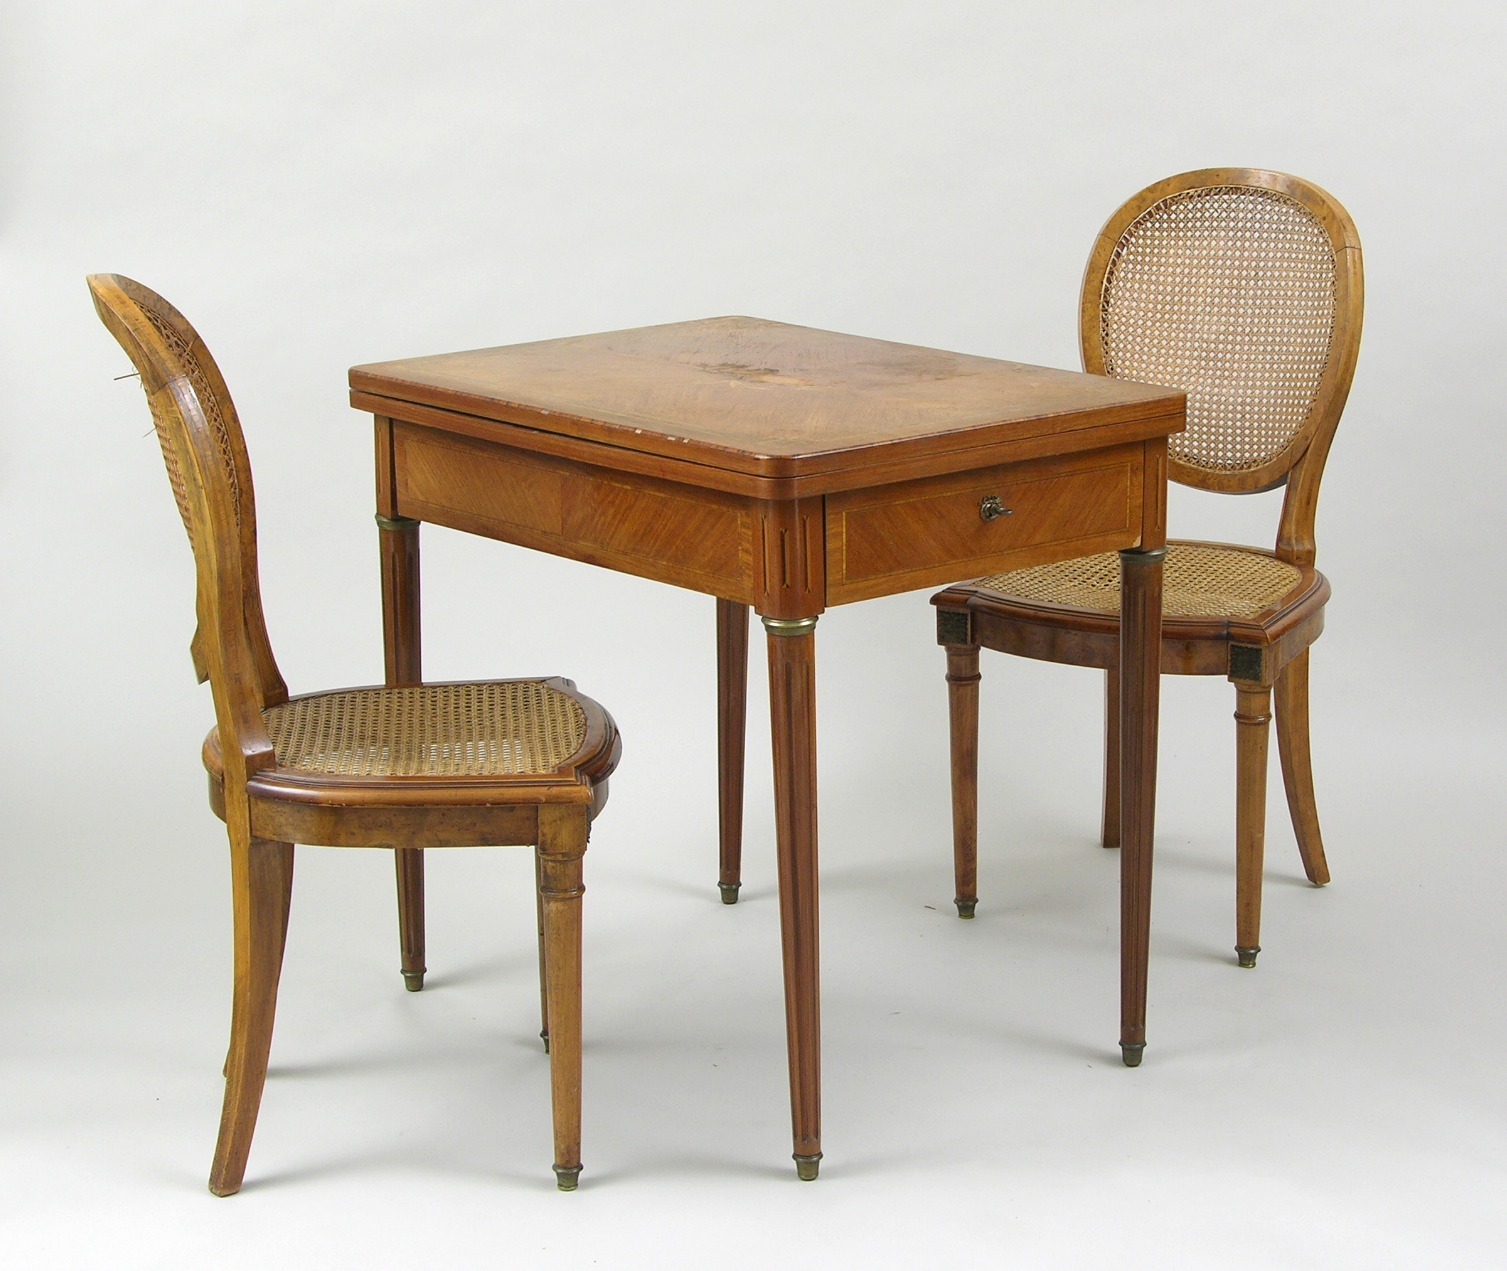 Antique game table chairs - An Antique Game Table And Two Chairs French Ca Early 20th Century